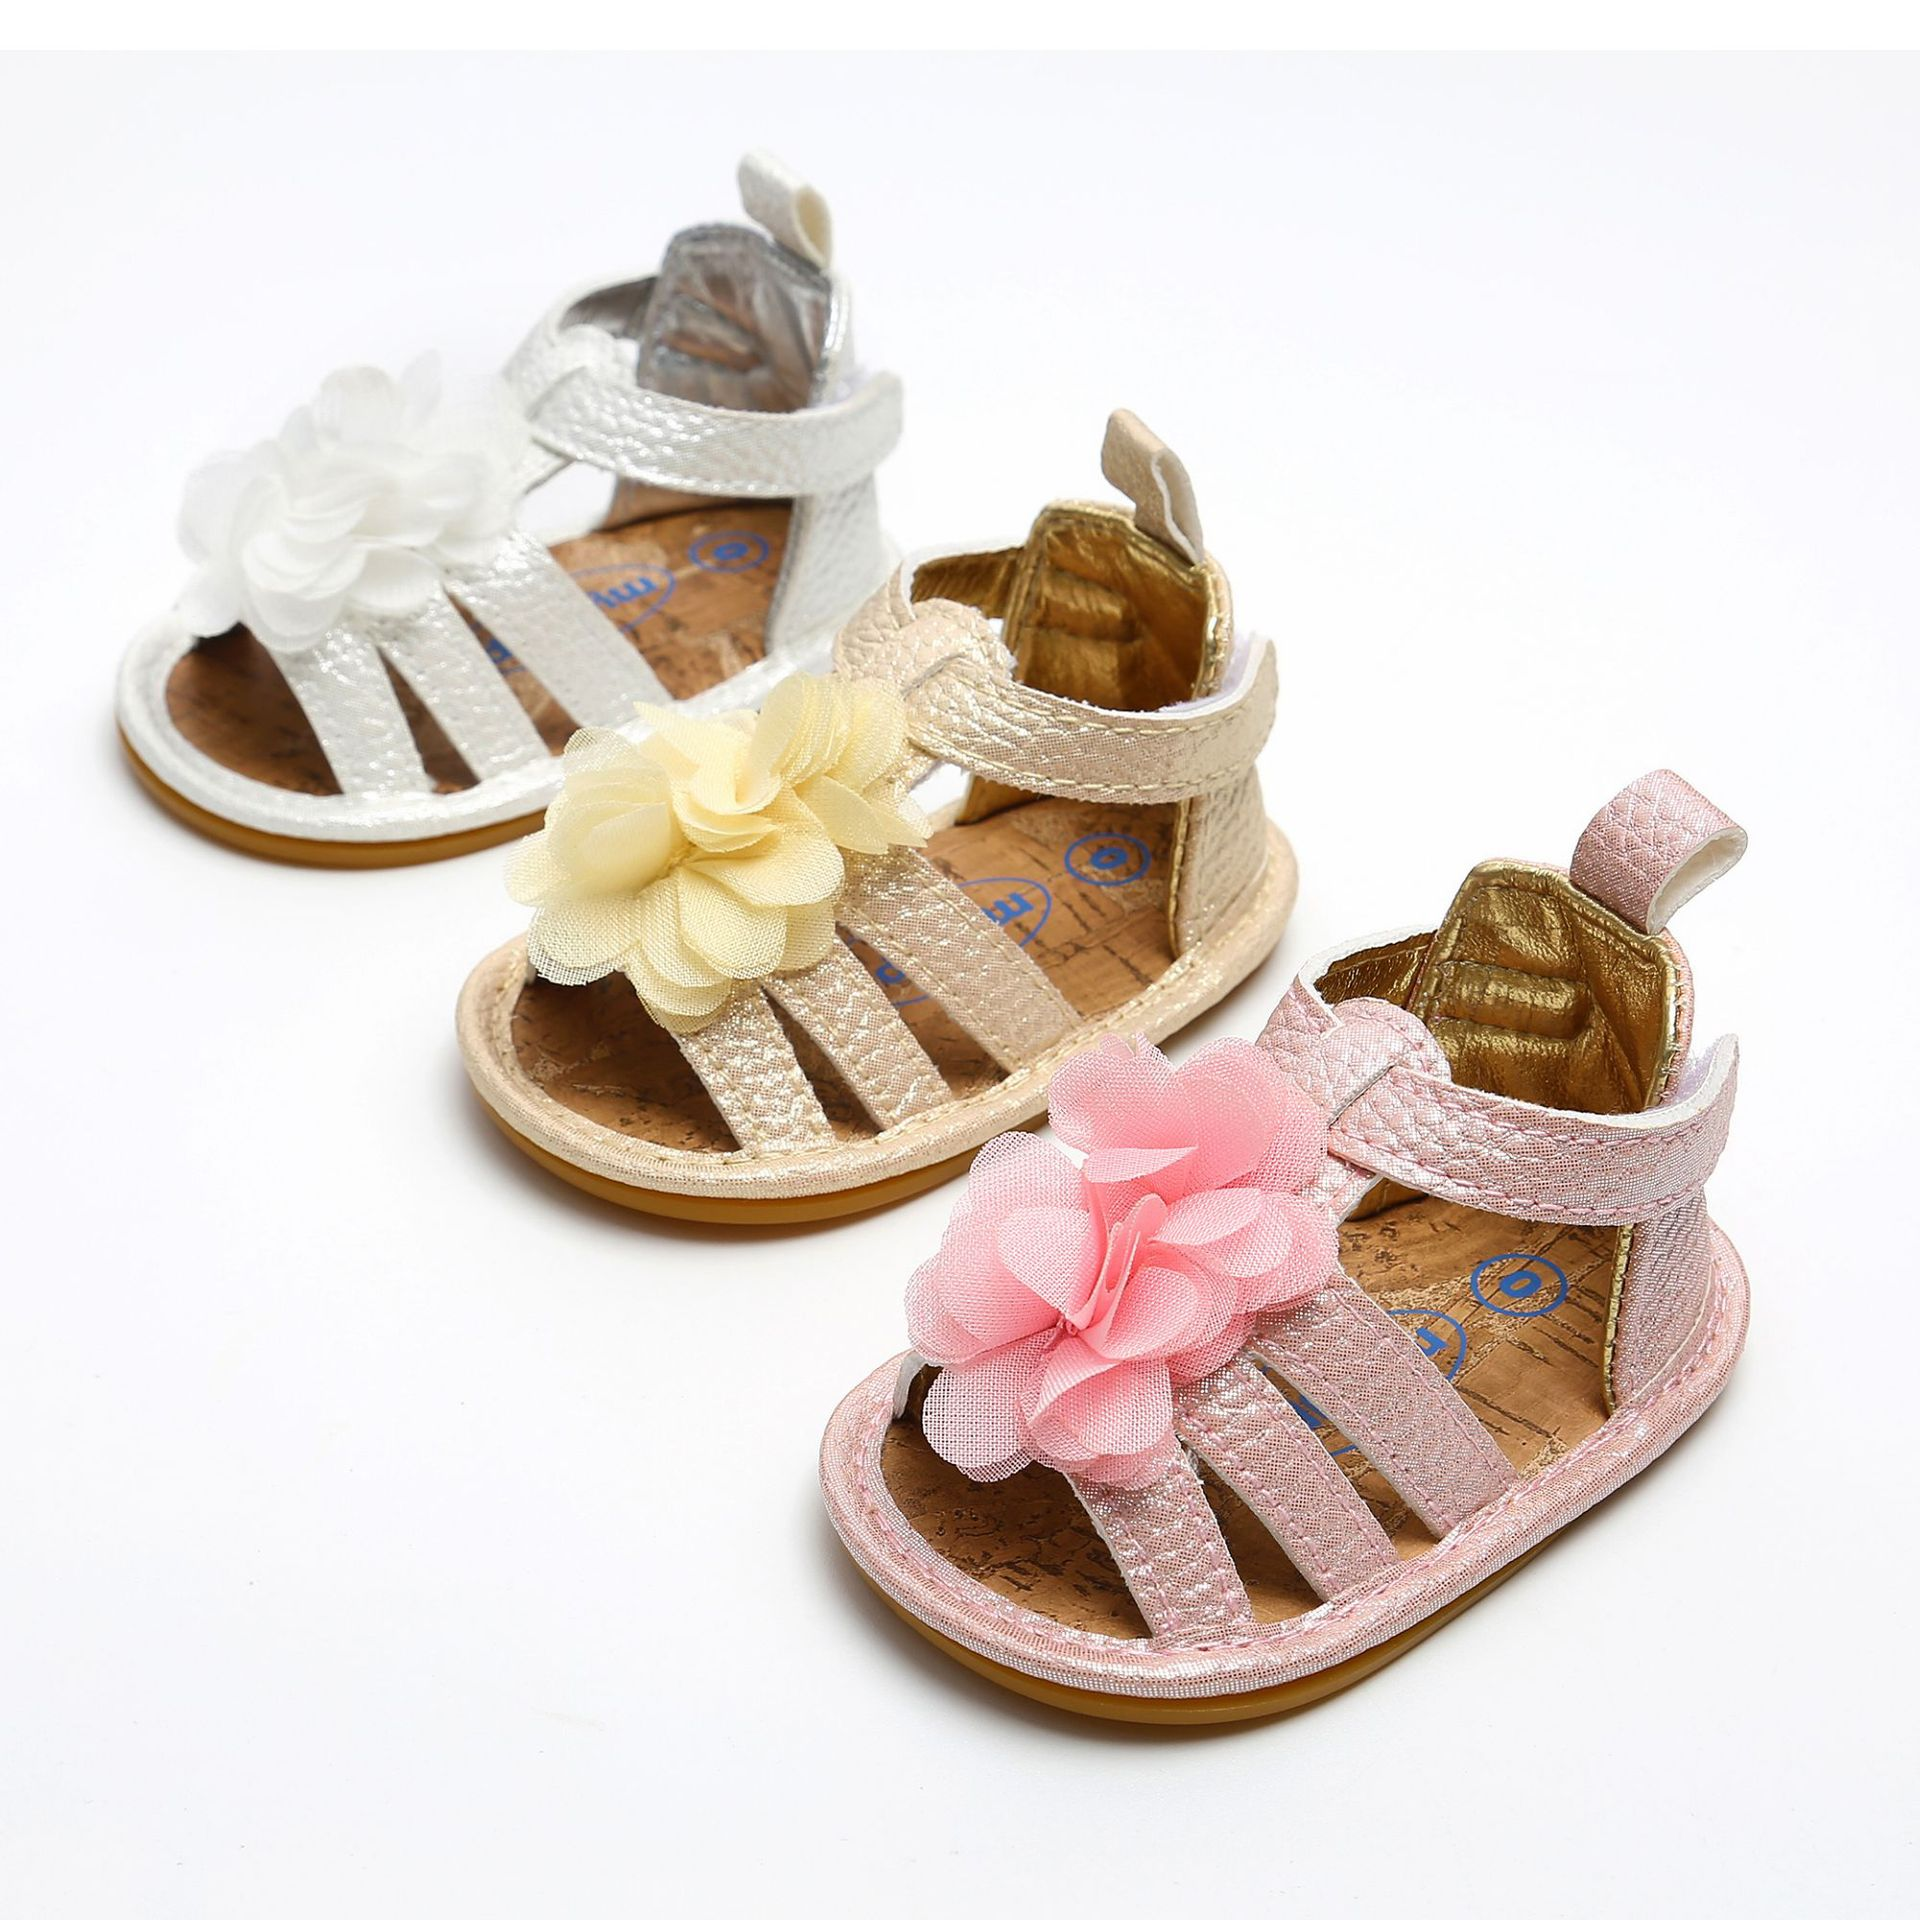 Baby Sandals Summer PU Leather Flower Design Newborn Baby Girl Boy Crib Shoes First Walkers Many Colors For Choose.DX230C